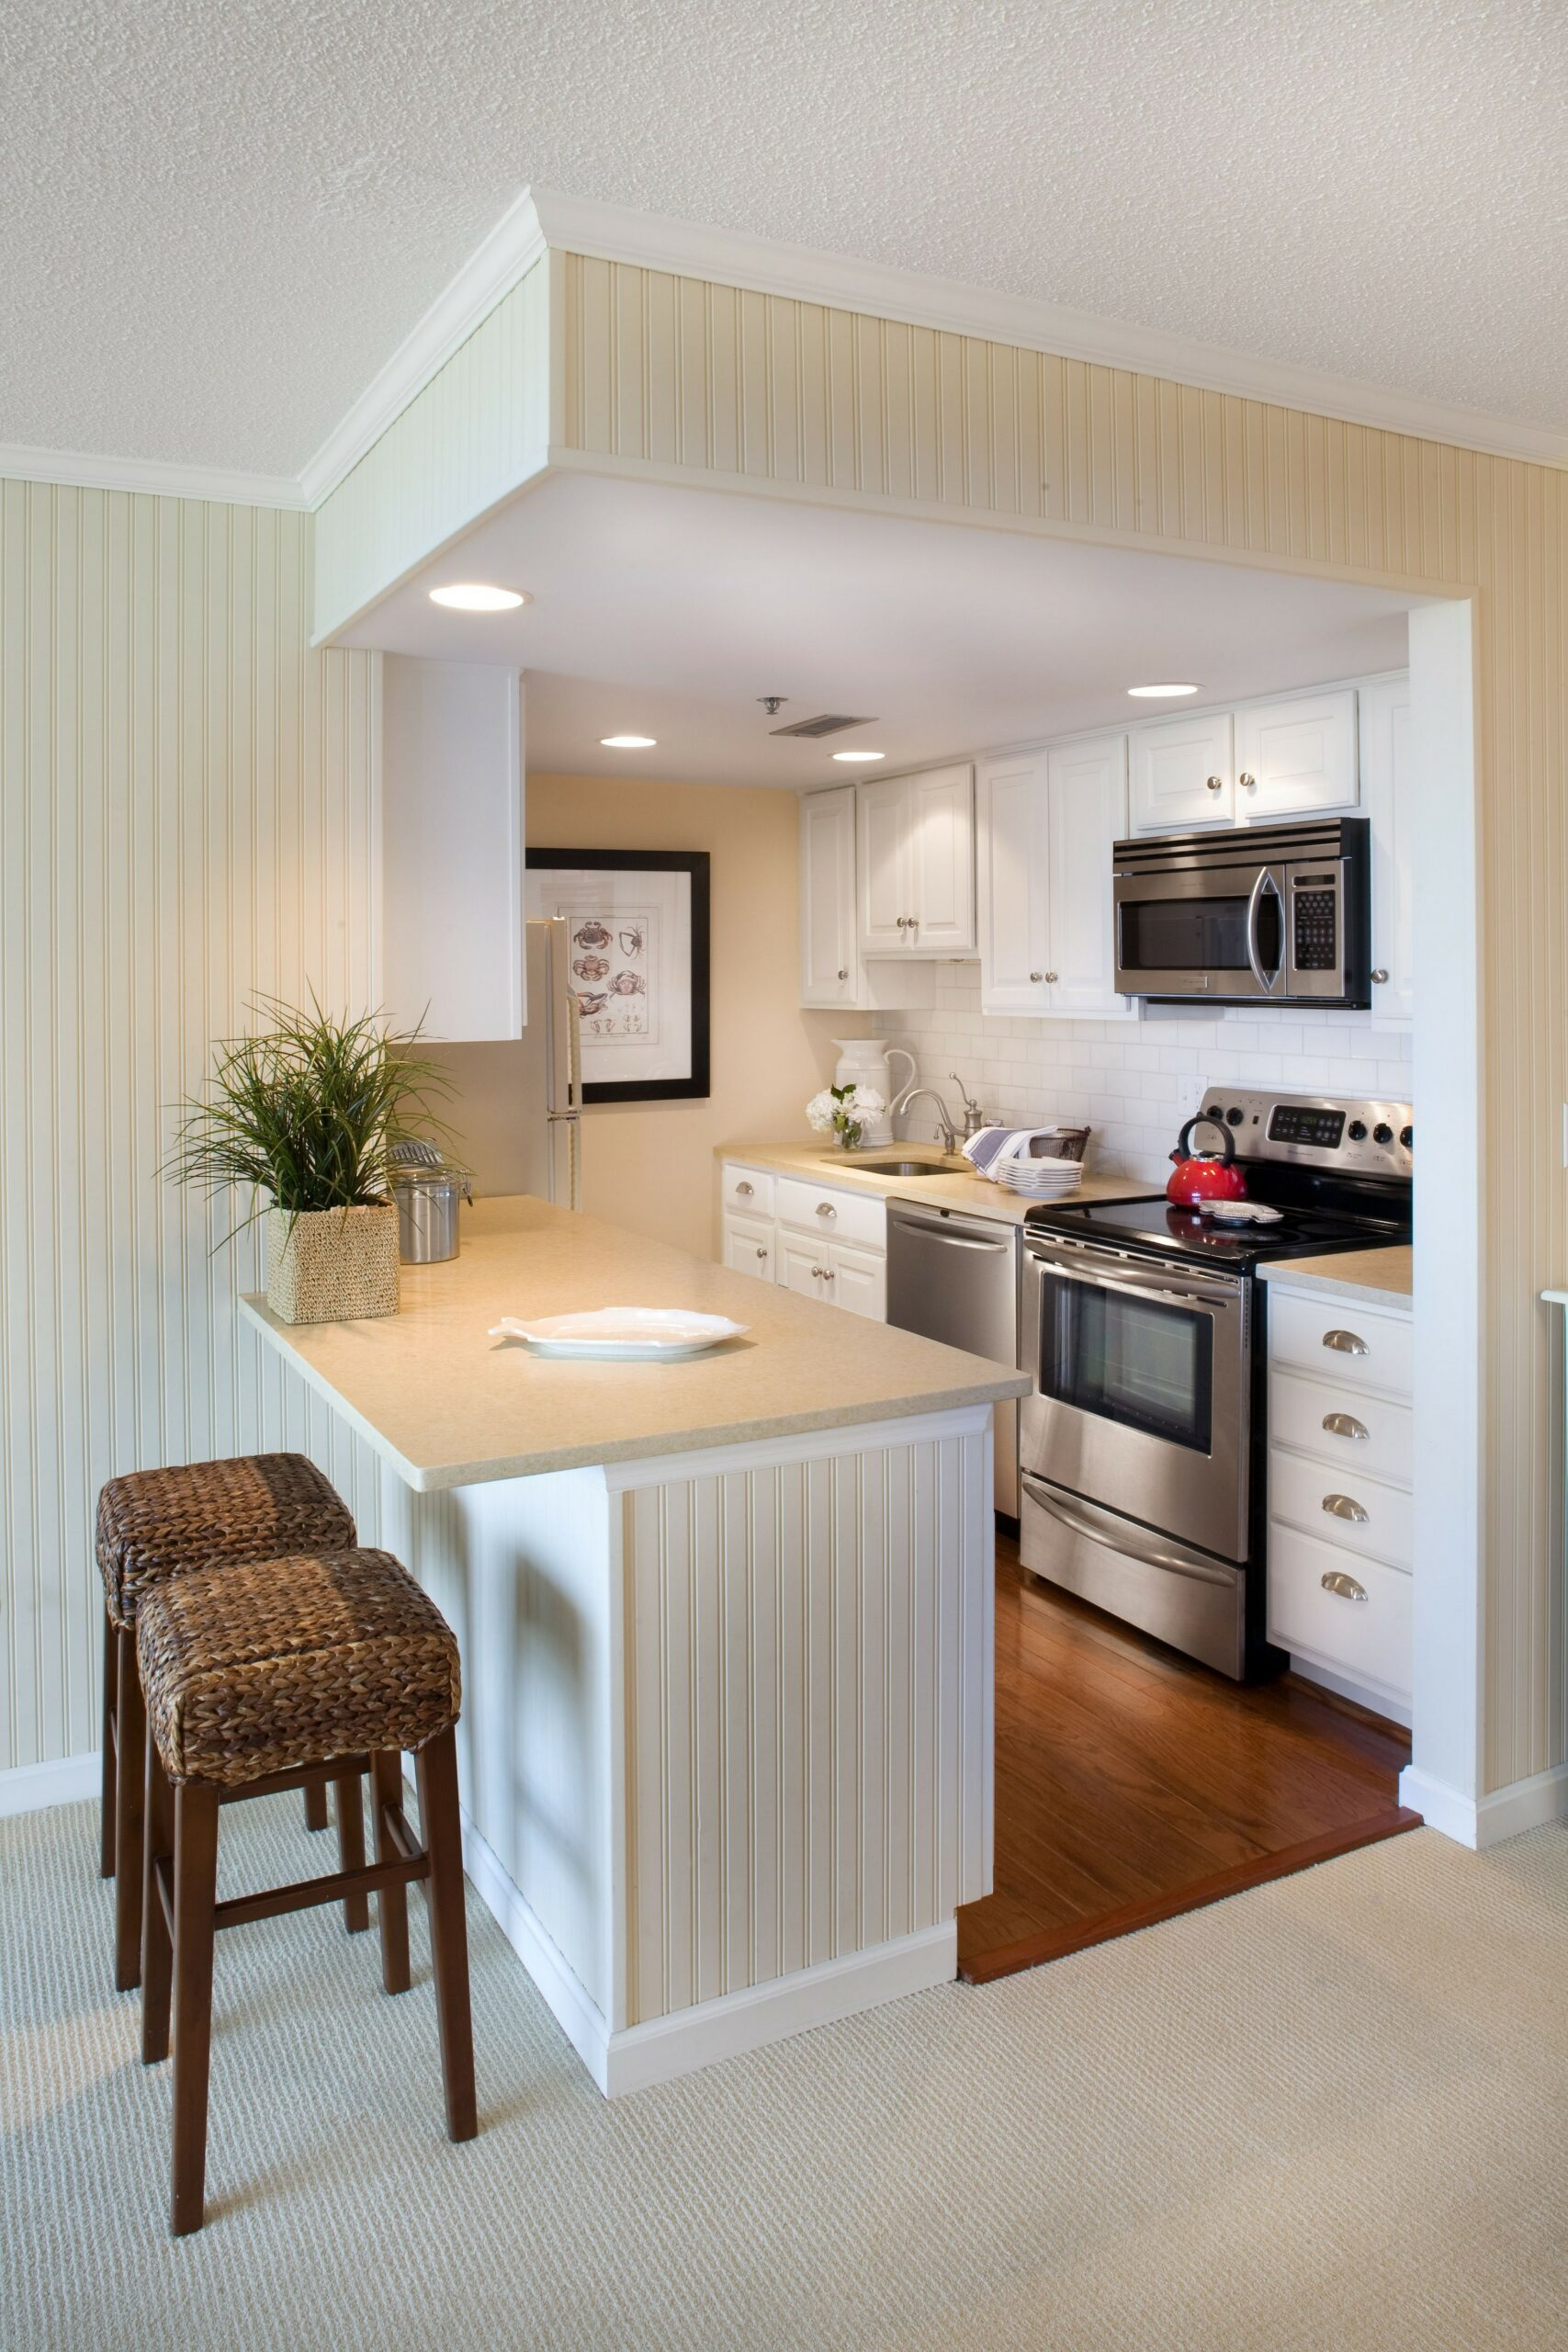 86 Some Small Kitchen Ideas To Help You Do Up Your Kitchen 13